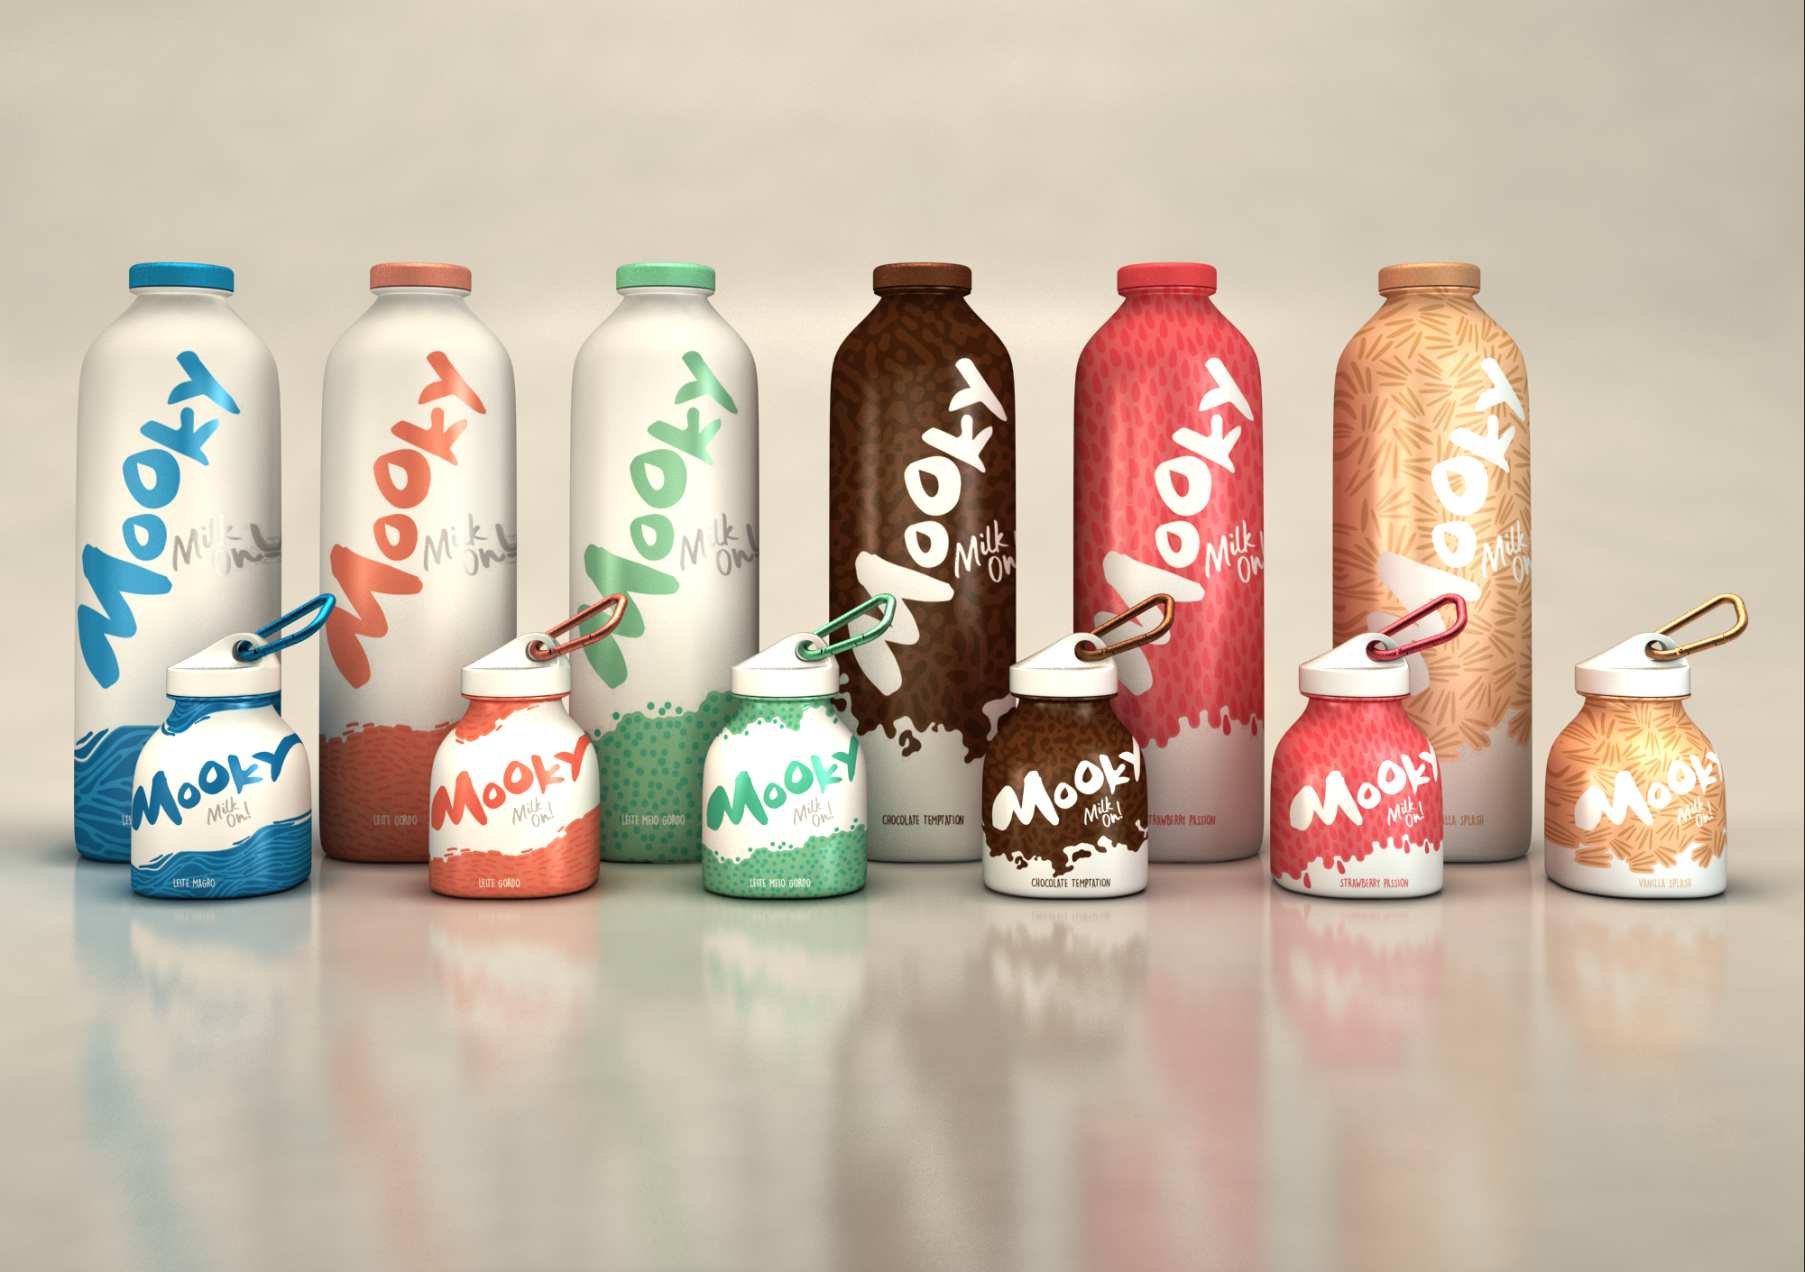 Mooky packaging continente